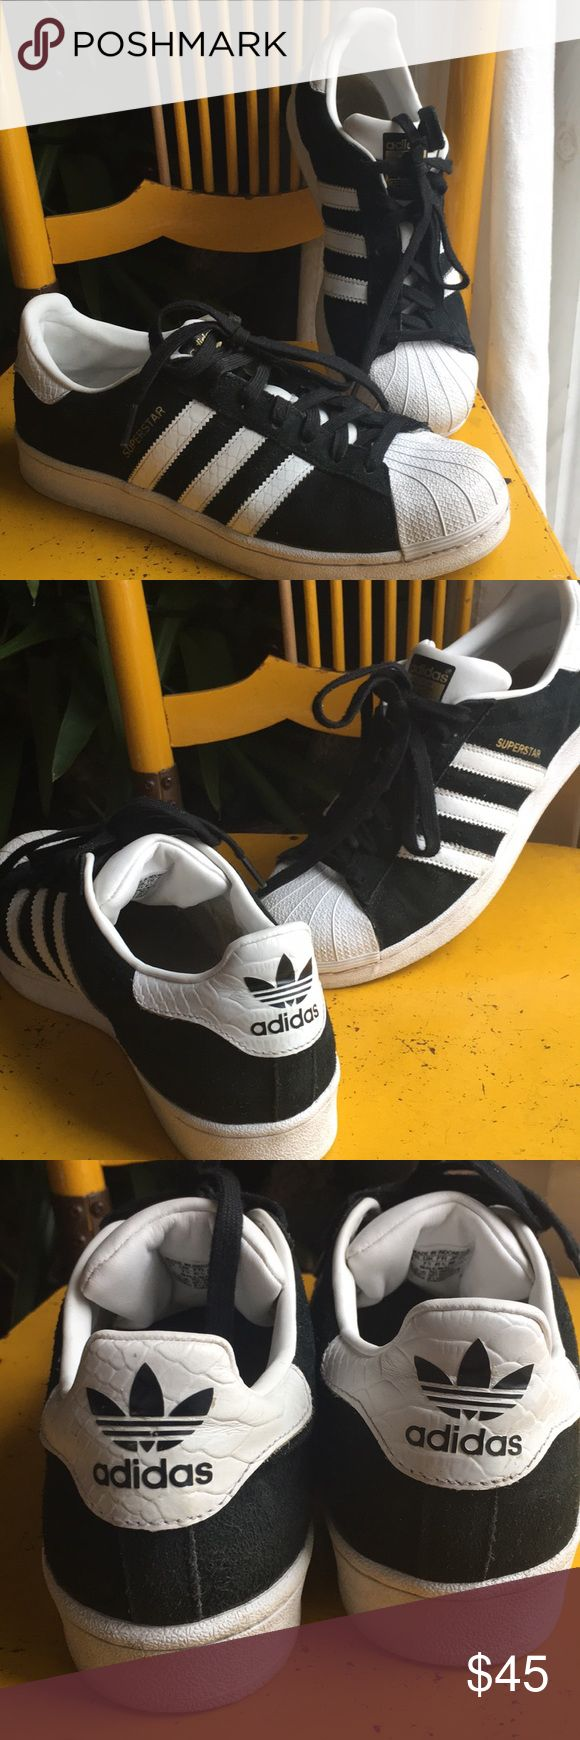 EUC Adidas Superstars - suede Men's size 8 - these were very gently worn - only inside shows any wear and new inserts could go in. They are otherwise pristine - black suede with gold lettering. Perfect skate shoe! adidas Shoes Sneakers